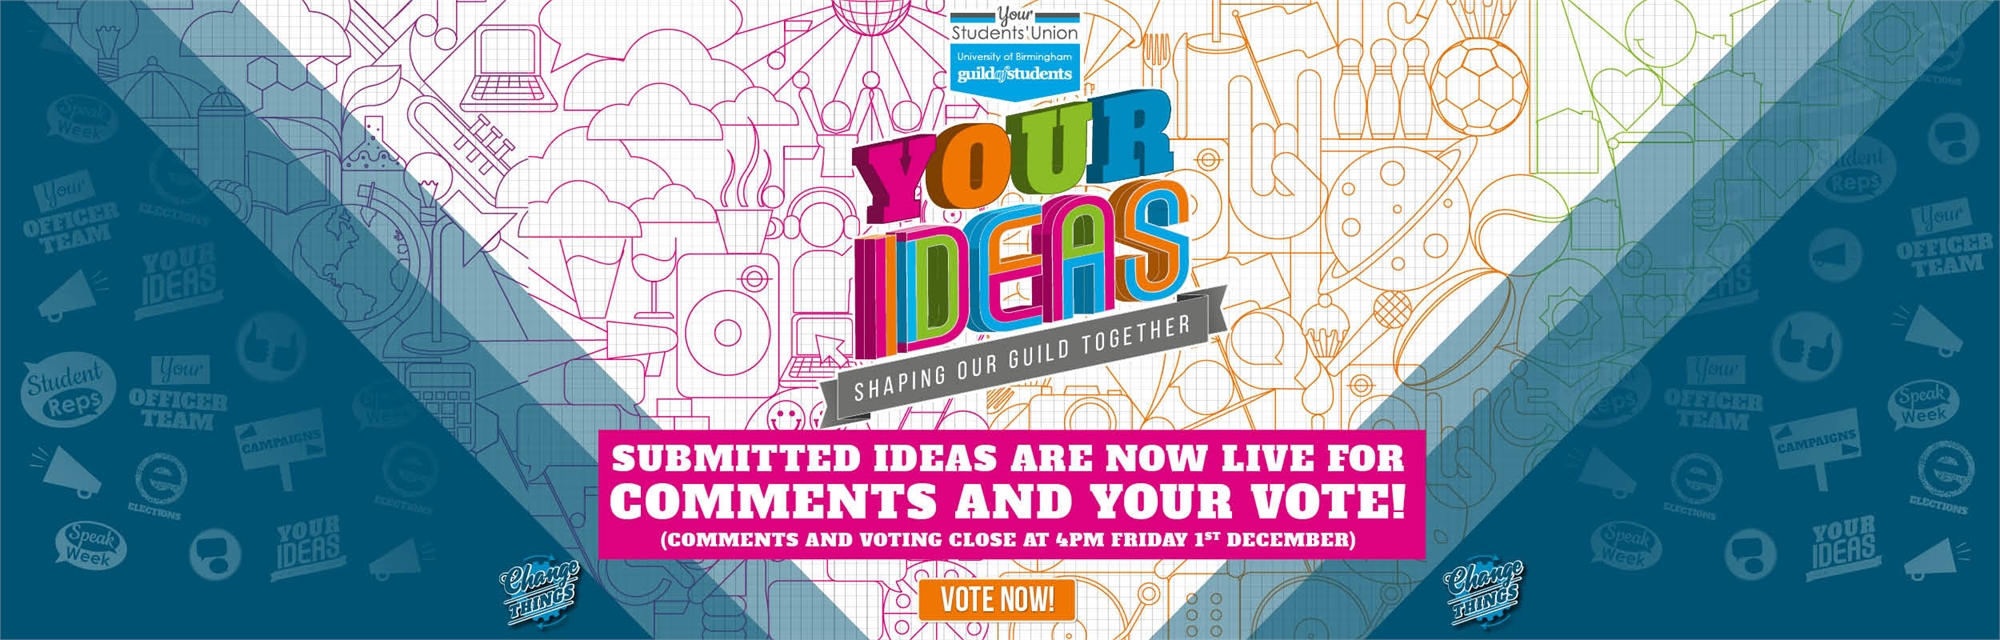 Your Ideas - Submitted Ideas are now live for comments and your vote - Voting closes 01/12/17 at 4pm